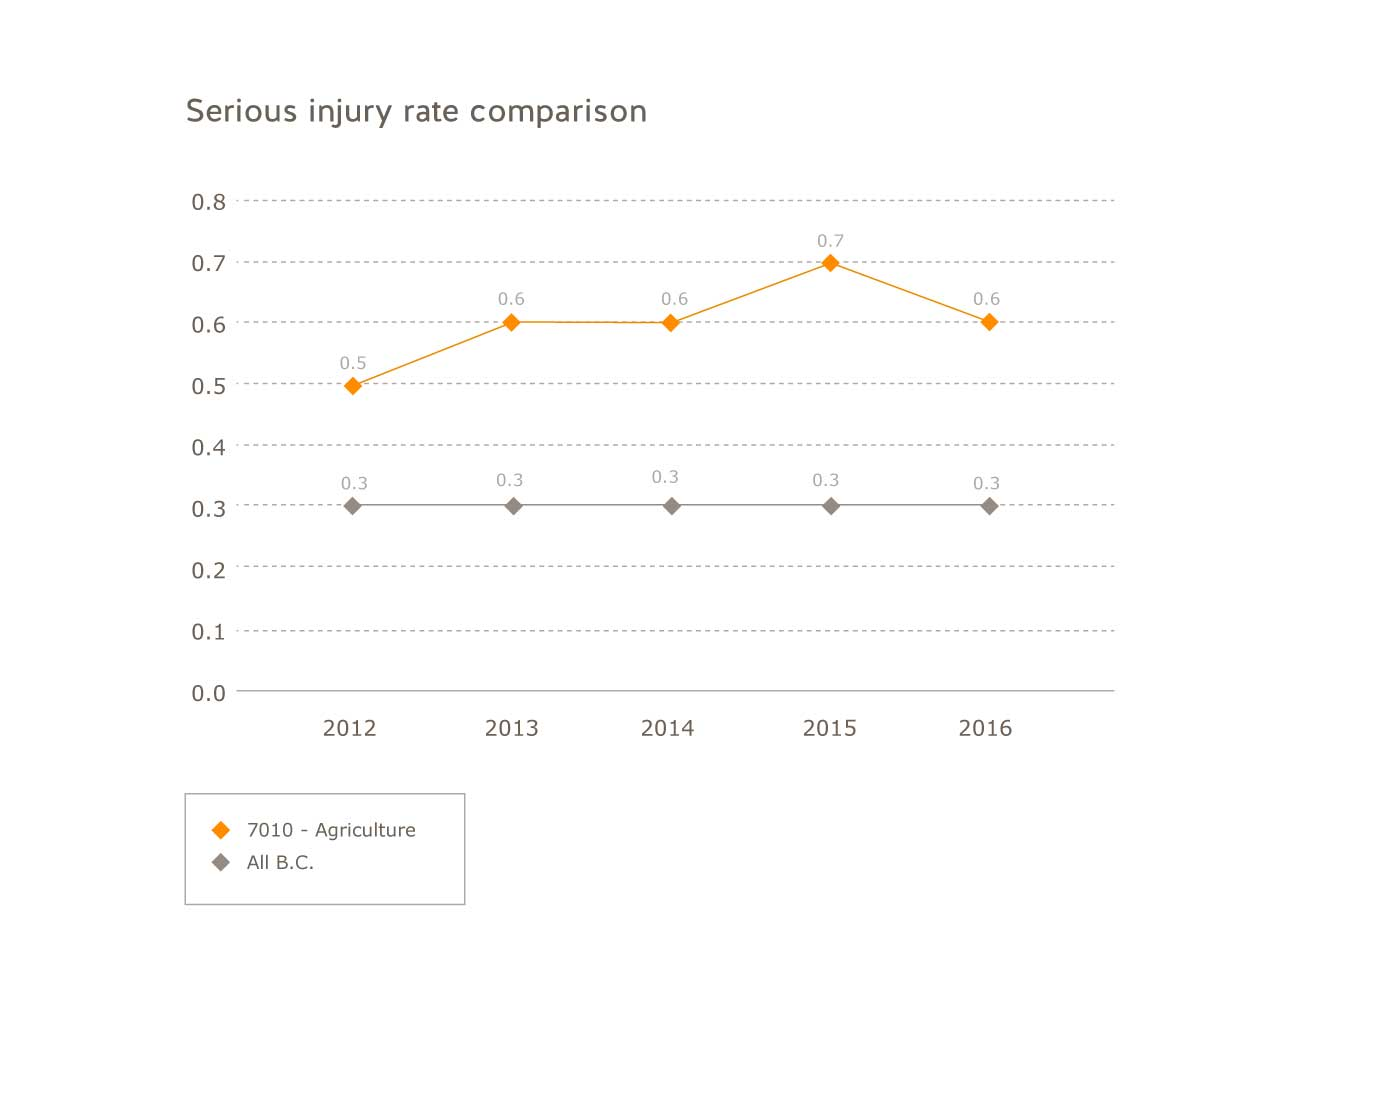 Serious injury rate comparison for the agriculture industry for 2012 to 2016. Agriculture: 2012=0.5; 2013=0.6; 2014=0.6; 2015=0.7; 2016=0.6.  All B.C.: 2012=0.3; 2013=0.3; 2014=0.3; 2015=0.3; 2016=0.3